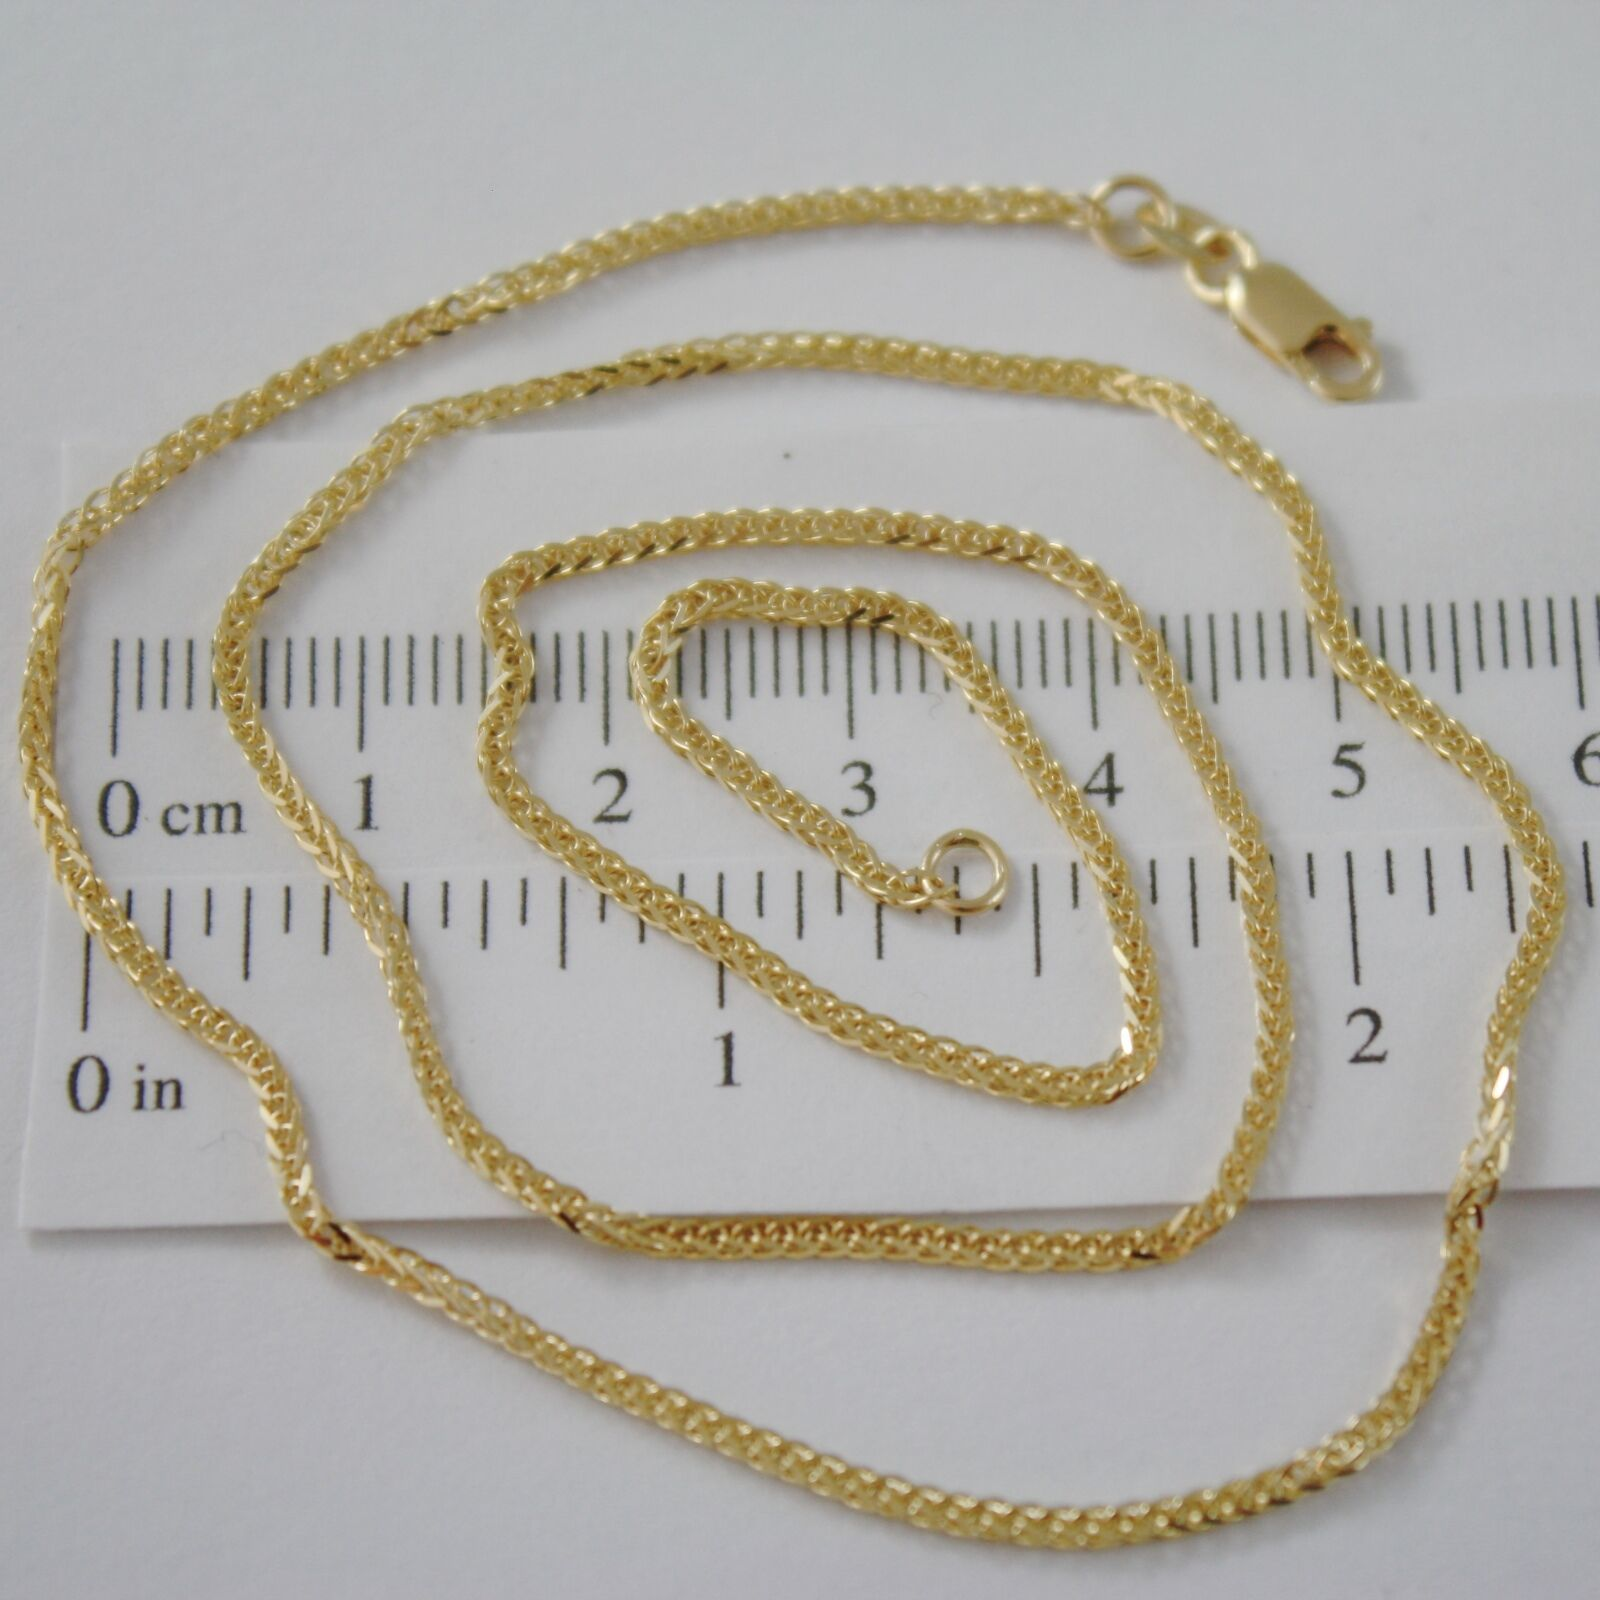 SOLID 18K YELLOW GOLD CHAIN NECKLACE 2MM EAR SQUARE LINK 15.75 IN, MADE IN ITALY